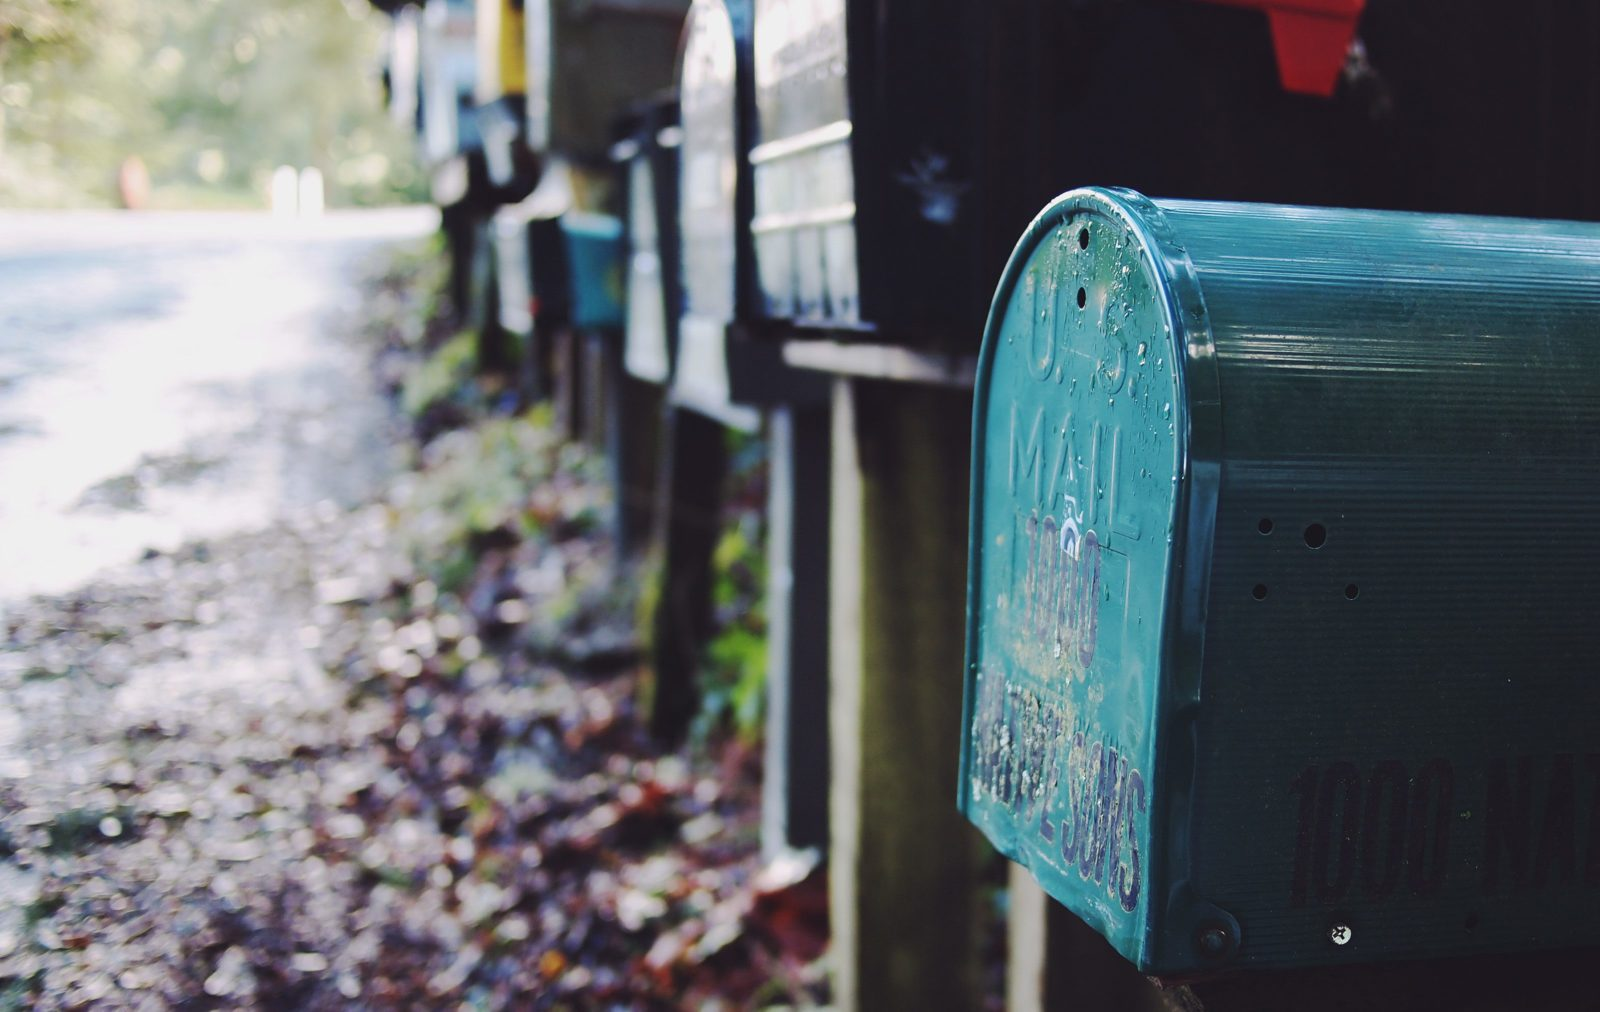 Debt Collection Letter Sent on Time-Barred Claim Violates FDCPA